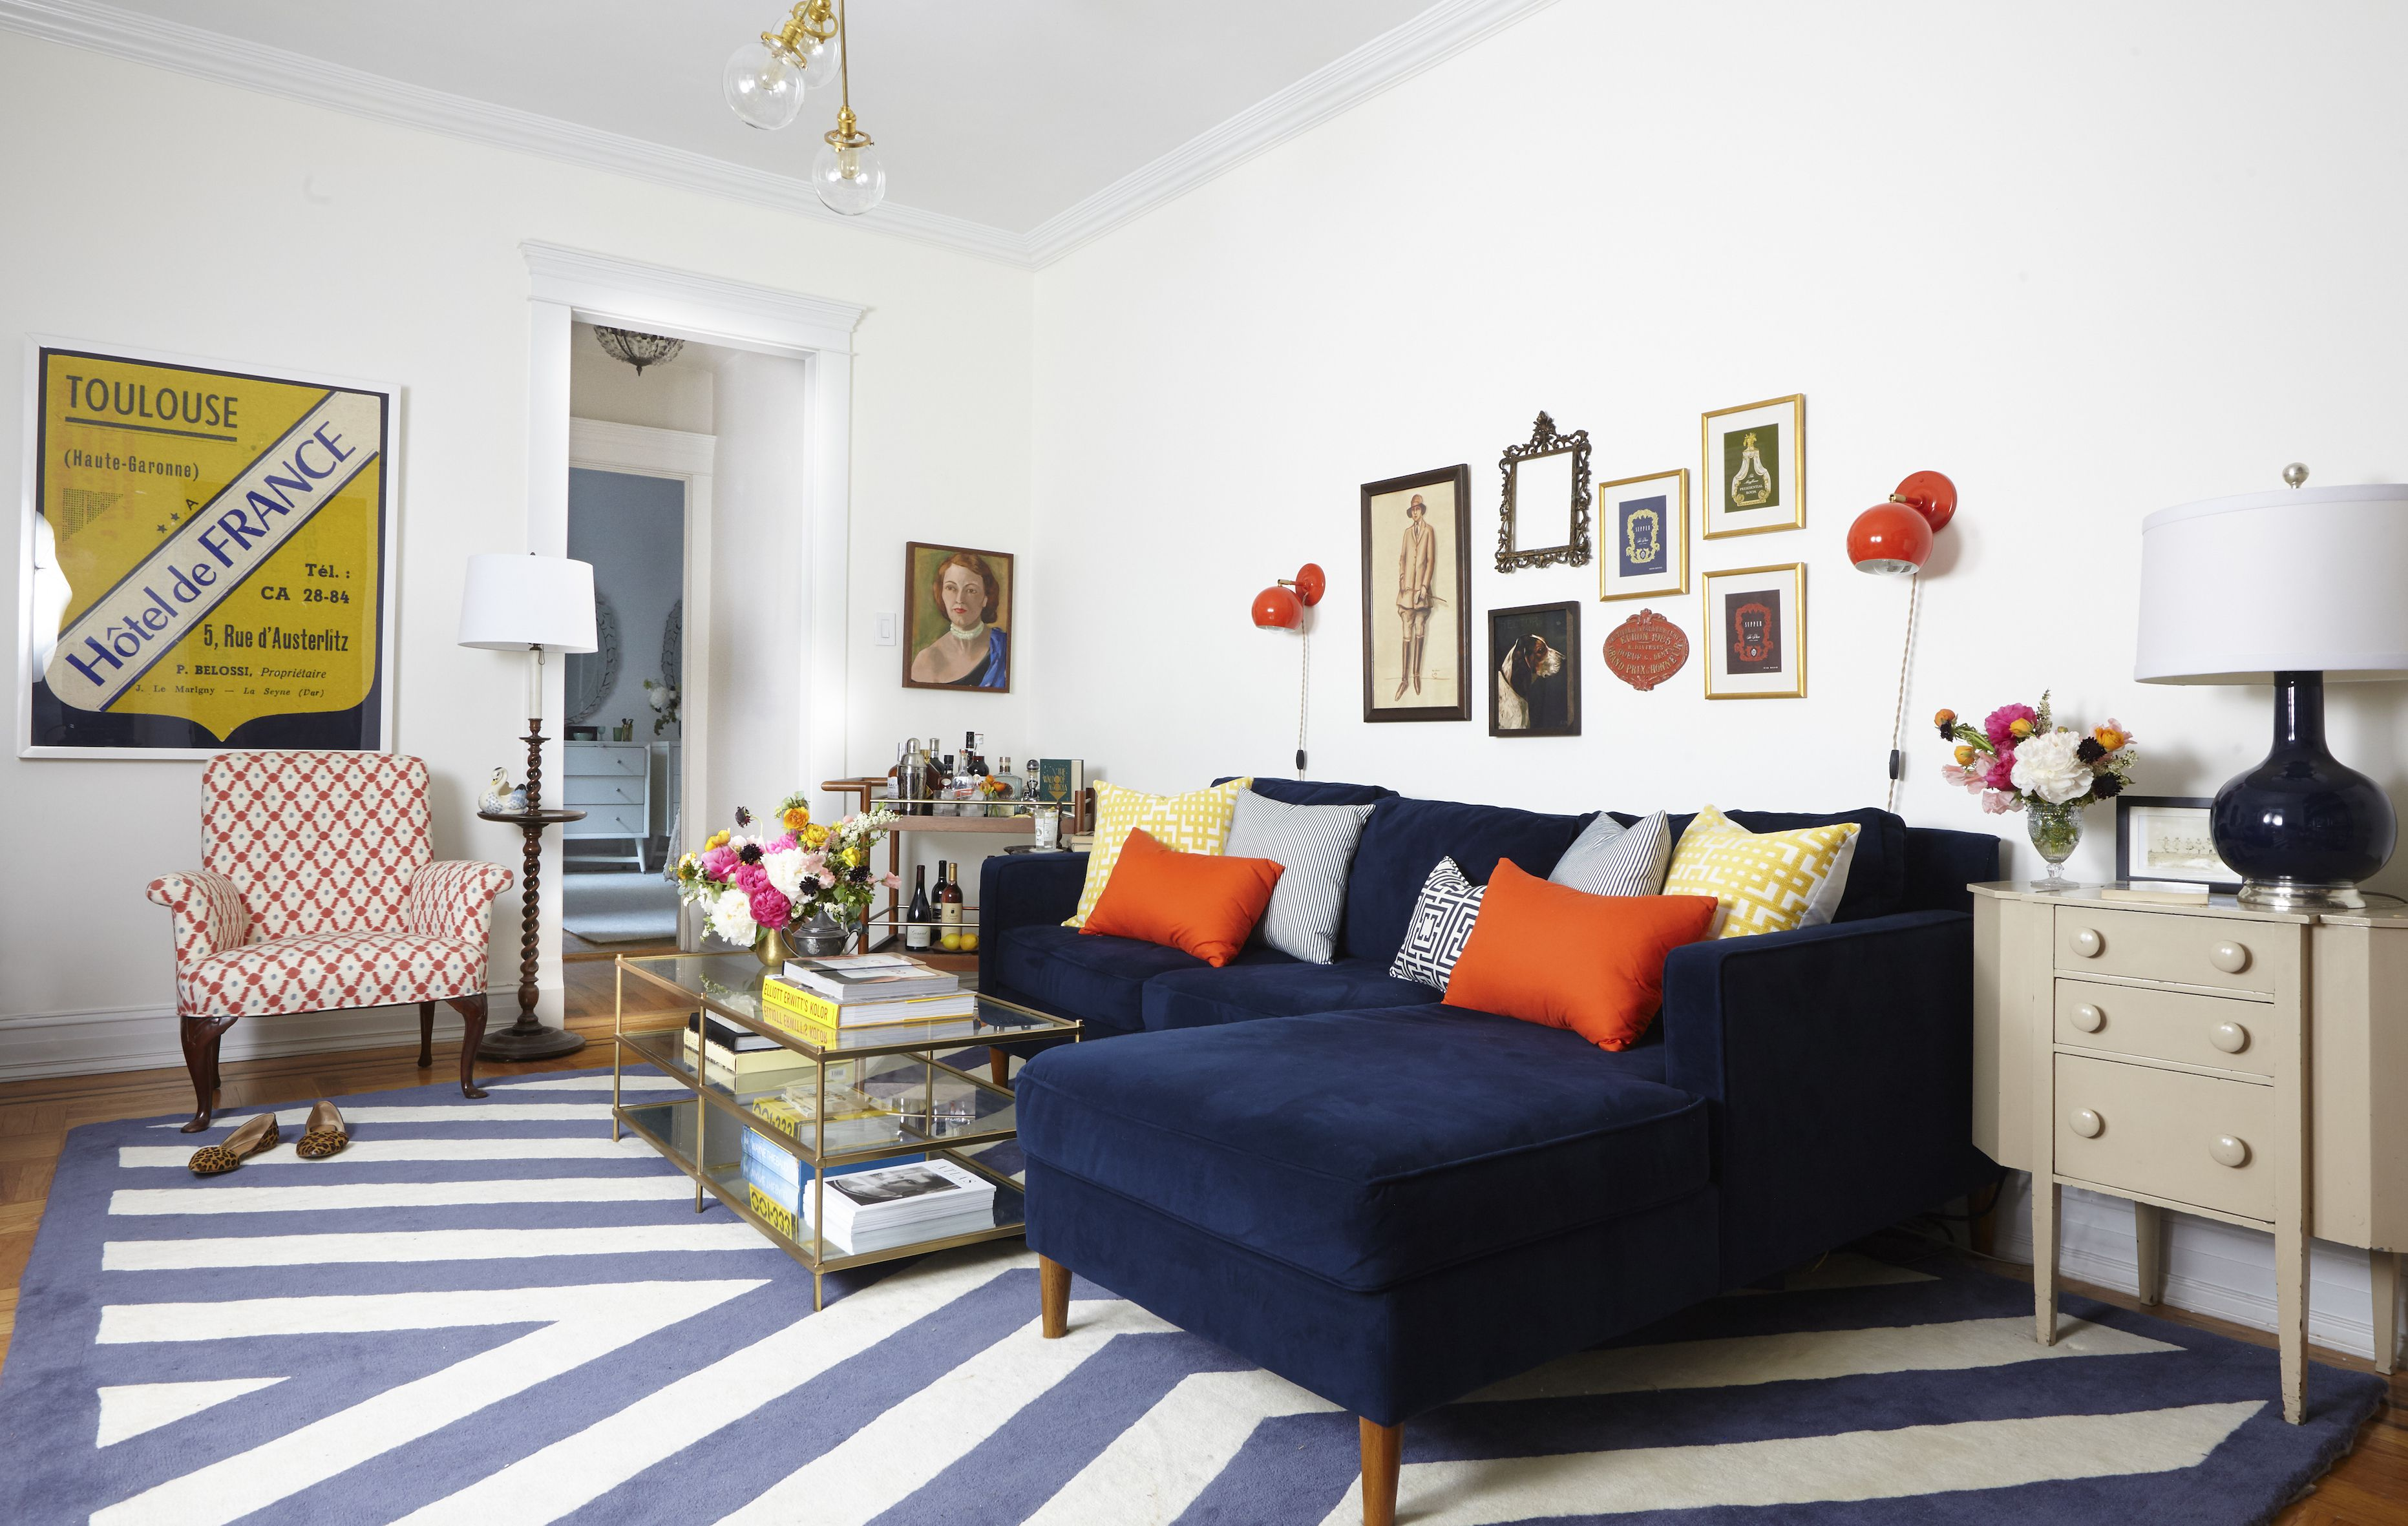 Find for you multiple   apartment decorating ideas